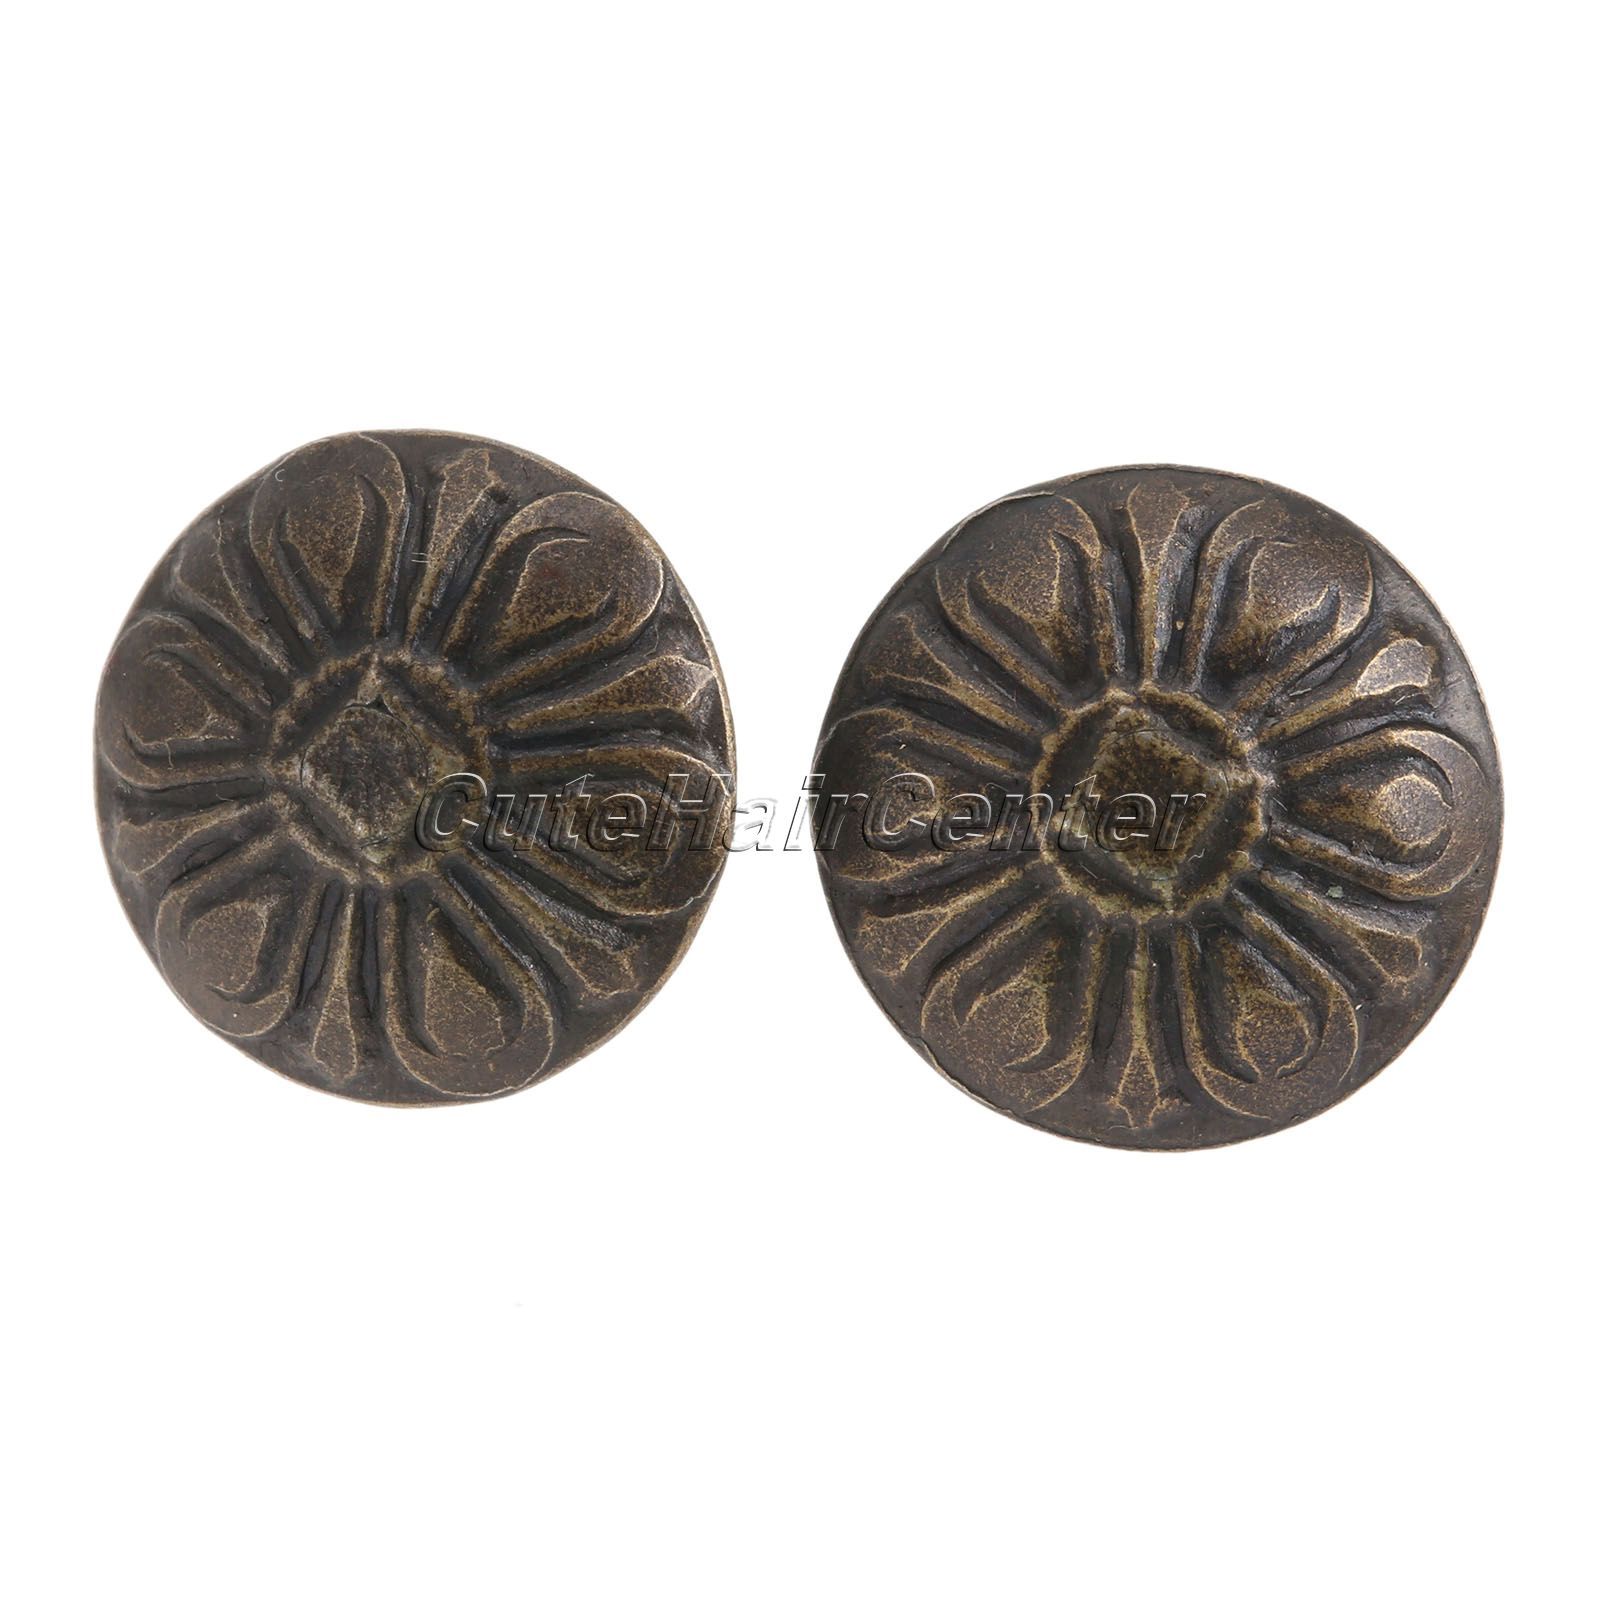 Hot Selling 100Pcs Iron <font><b>Elegant</b></font> Bronze Upholstery Nails Tacks Studs Vintage Style Furniture Fix For <font><b>Home</b></font> <font><b>Decoration</b></font>